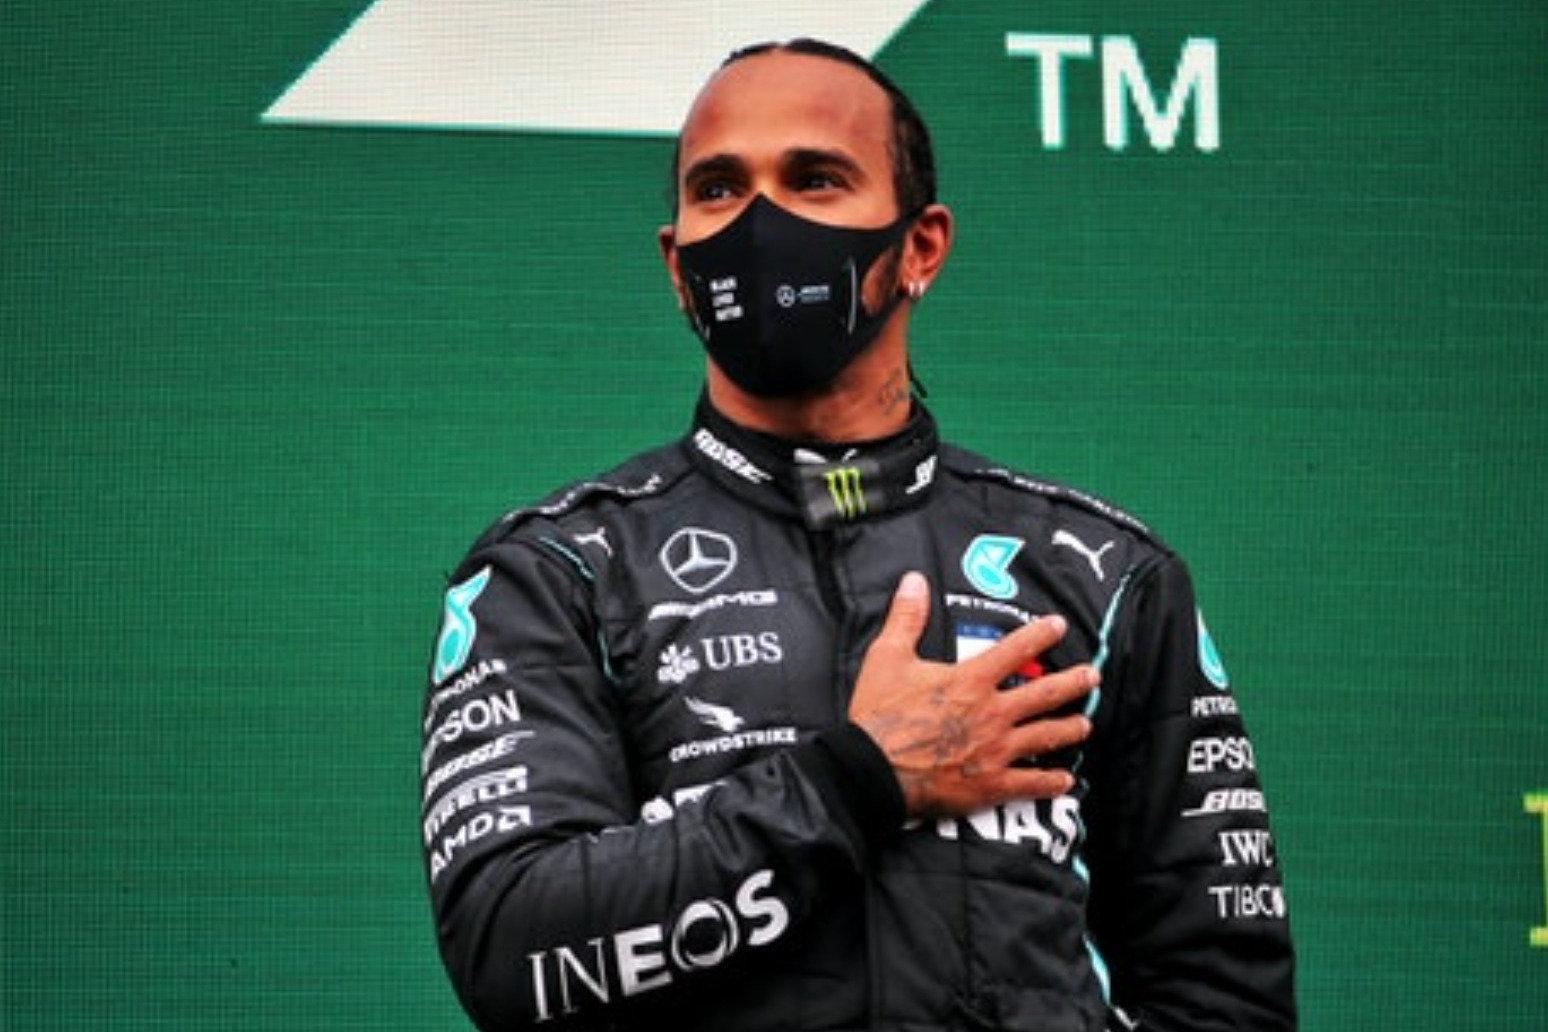 Lewis Hamilton to miss Sakhir Grand Prix after testing positive for coronavirus